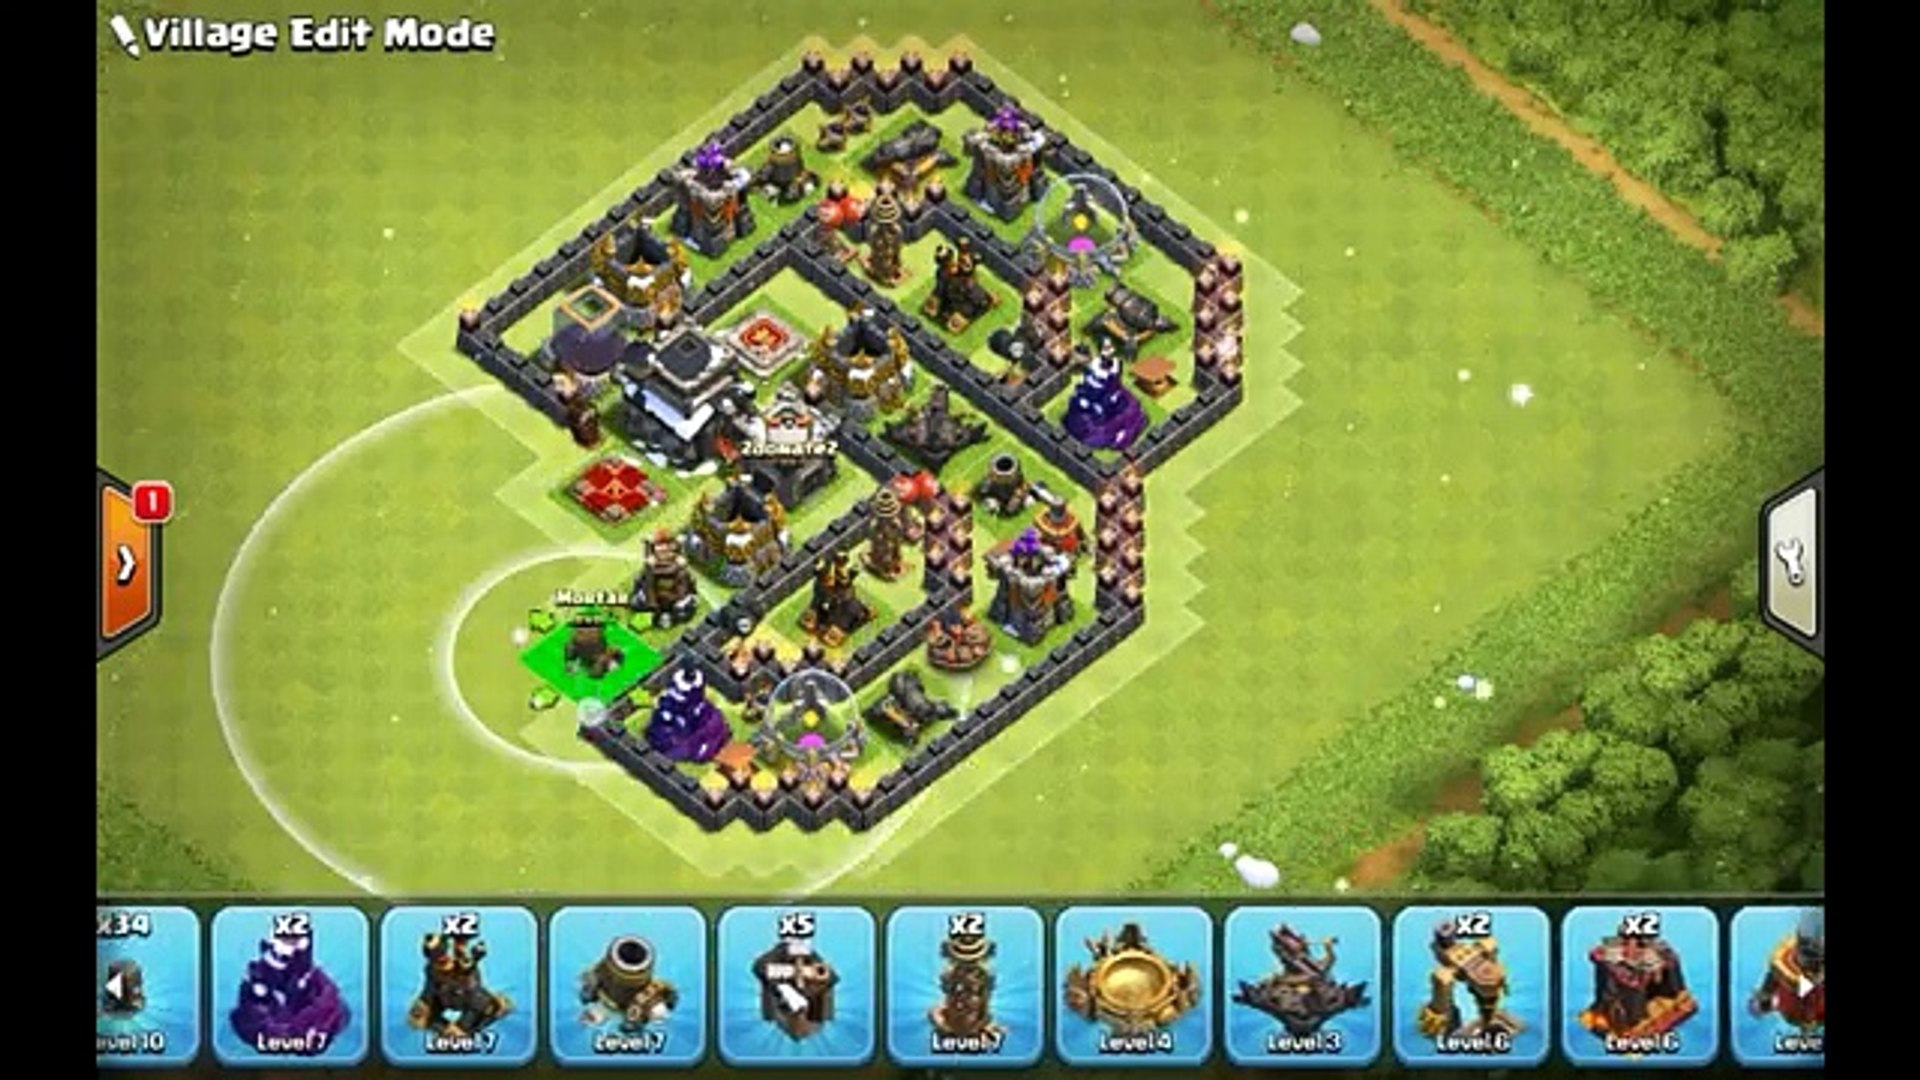 New Unbeatable Town Hall 9 Base Layout Coc Th9 Best Trophy Pushing Base 2017 Clash Of Clans Video Dailymotion